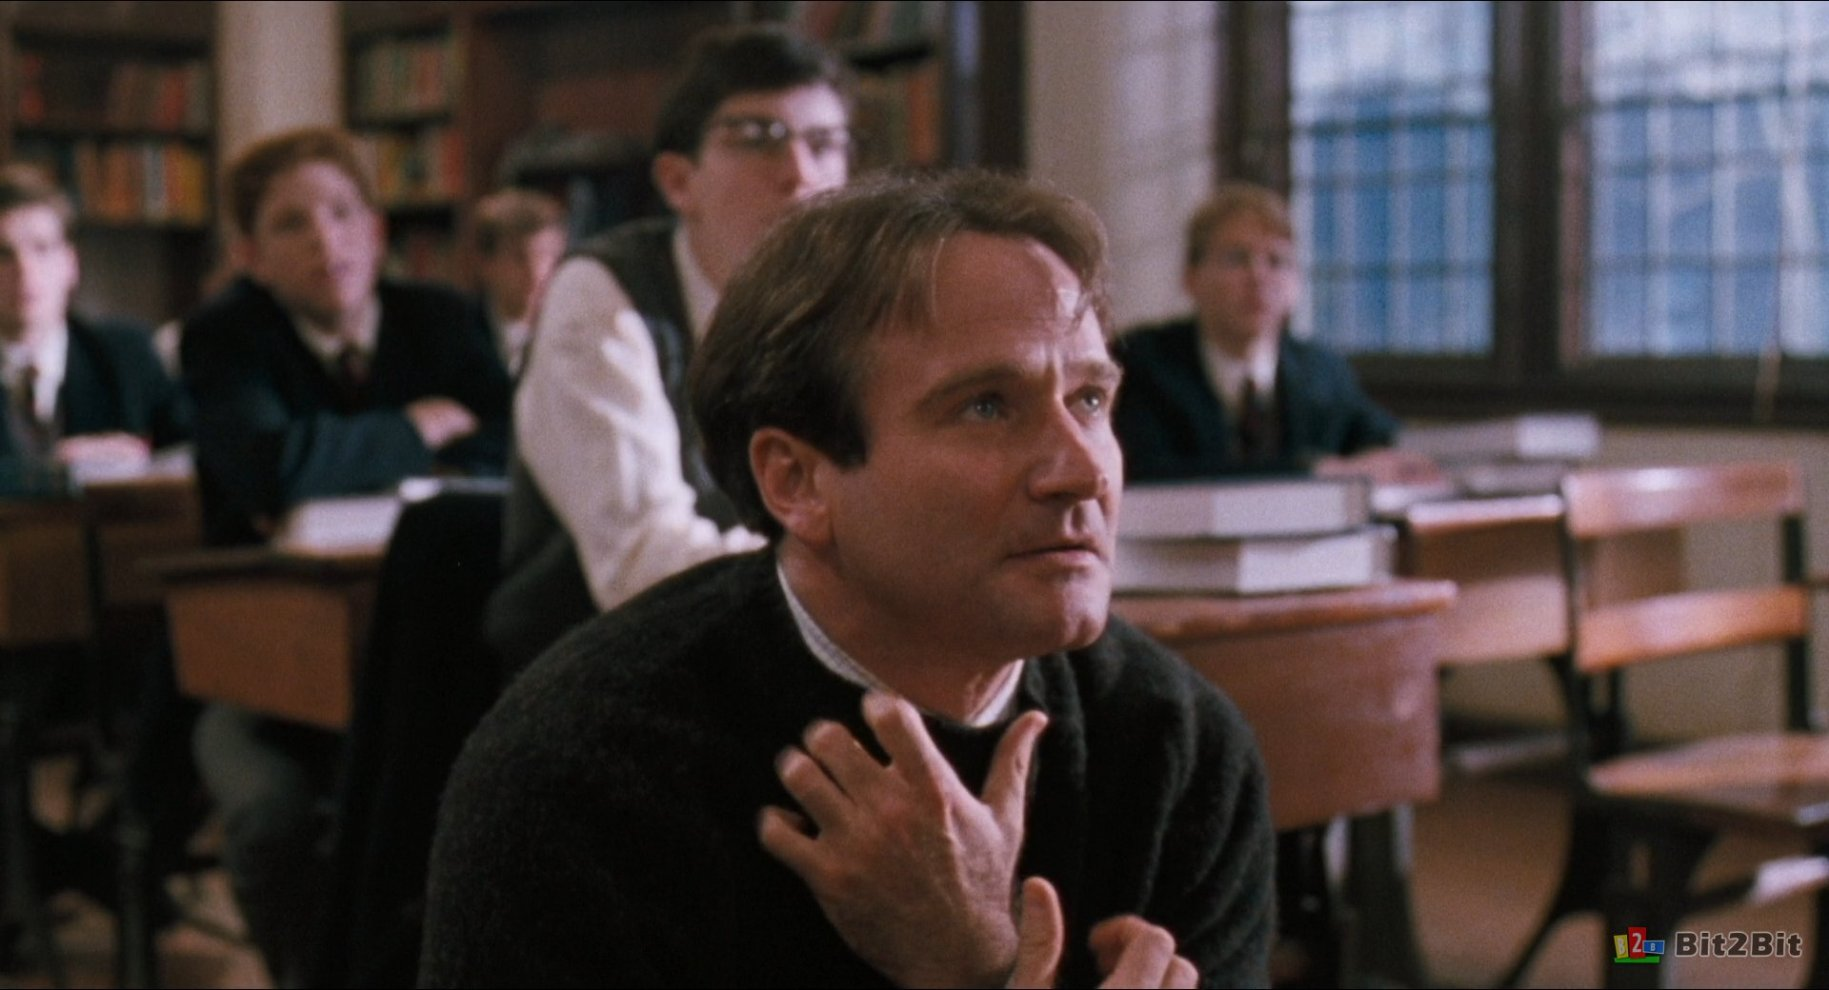 Dead Poets Society image missing